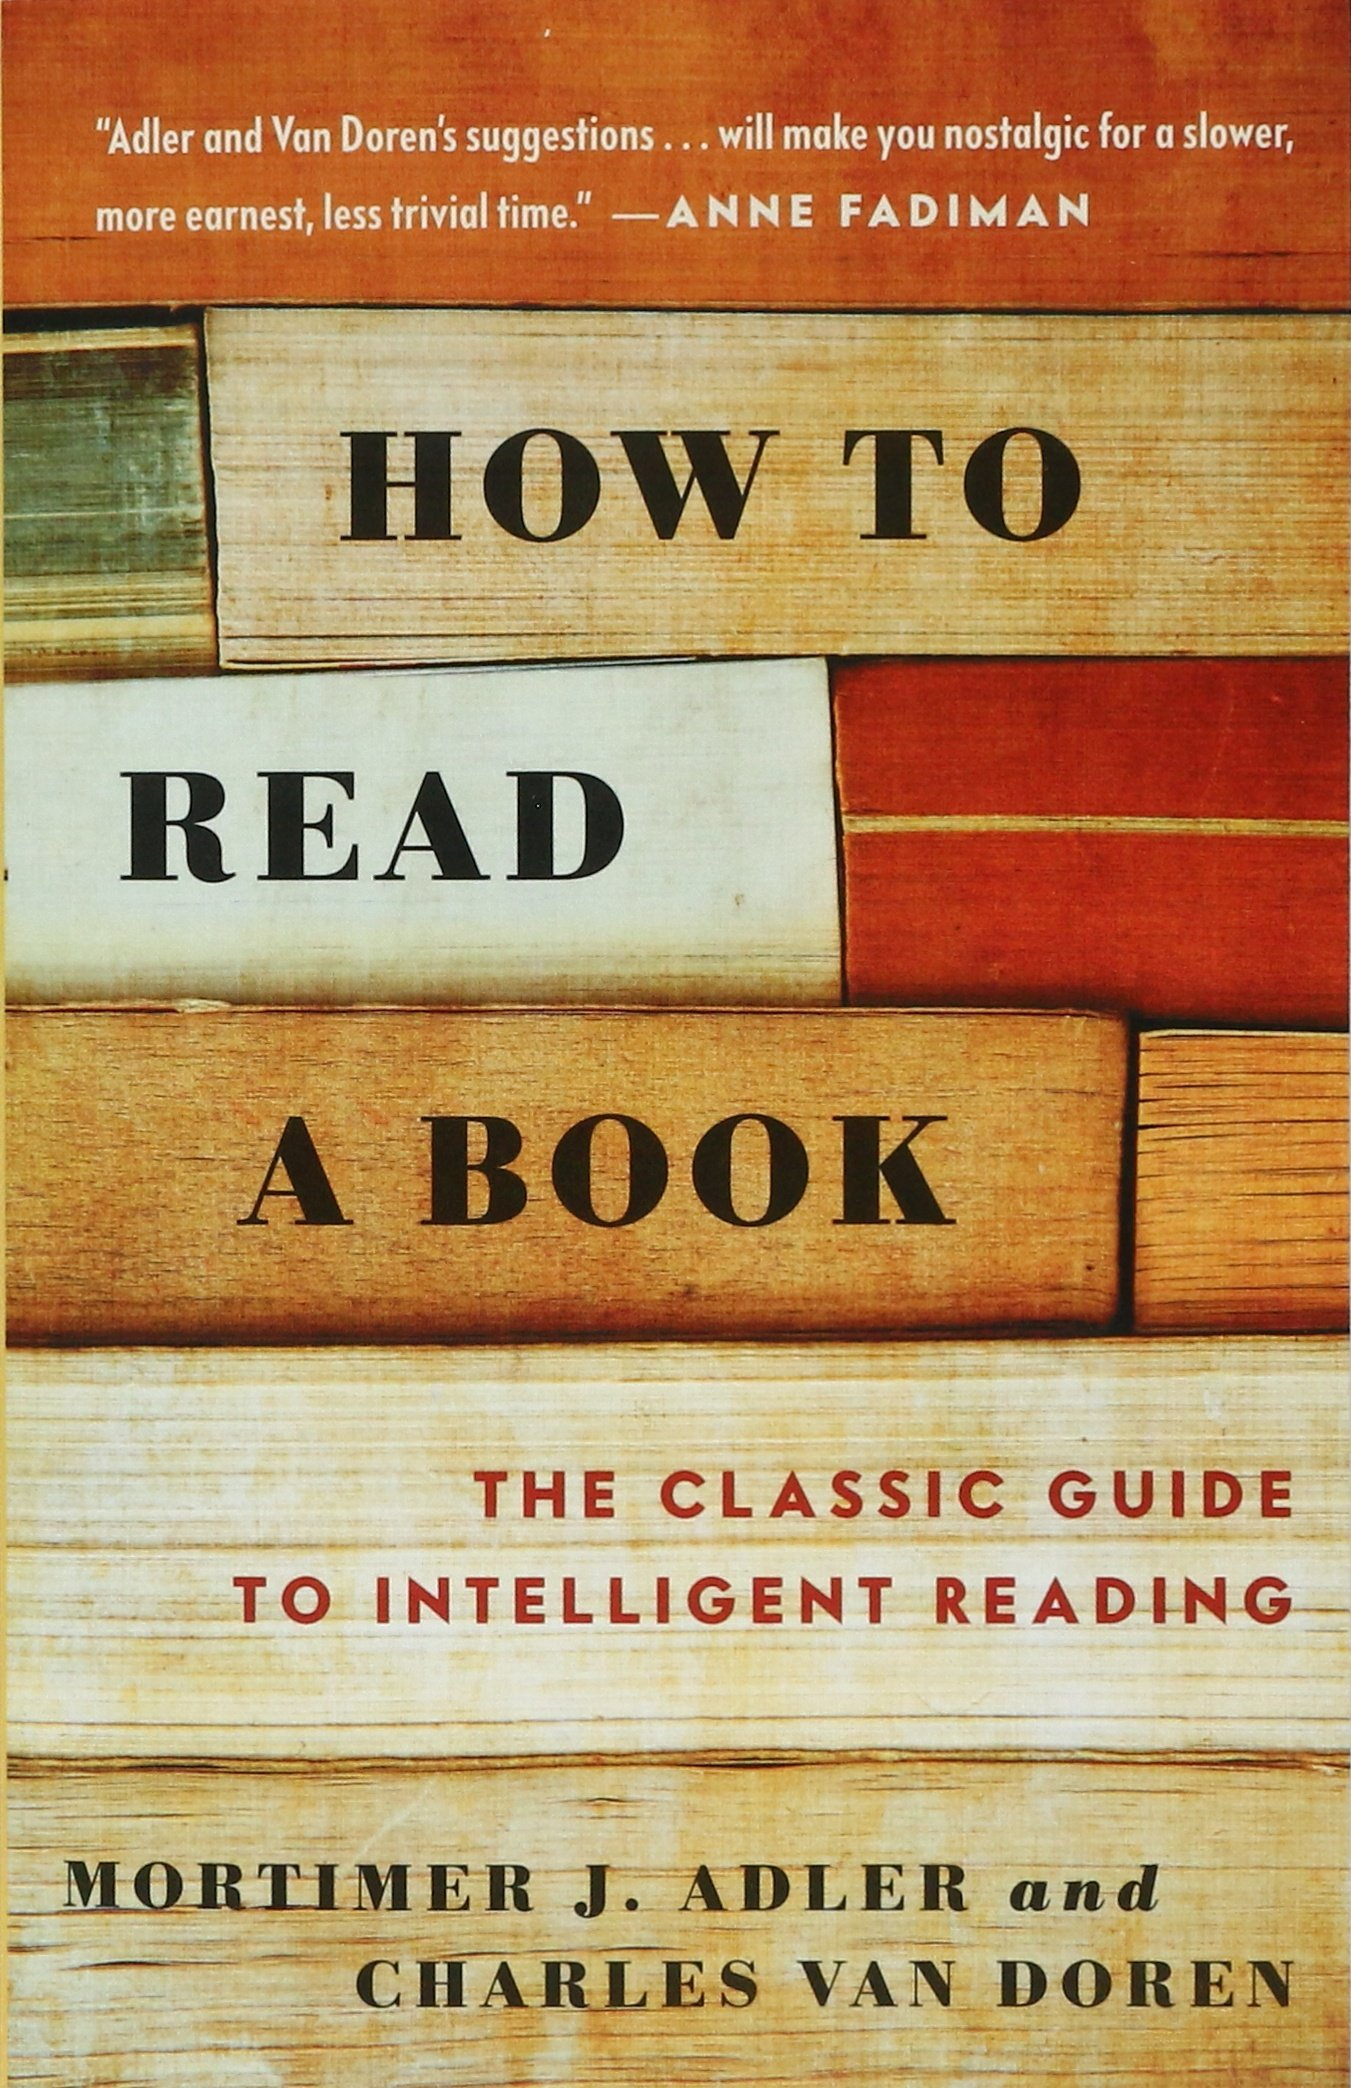 How To Read A Book: The Classic Guide To Intelligent Reading (a Touchstone  Book): Amazon: Mortimer J Adler, Charles Van Doren: 0042516291251:  Books